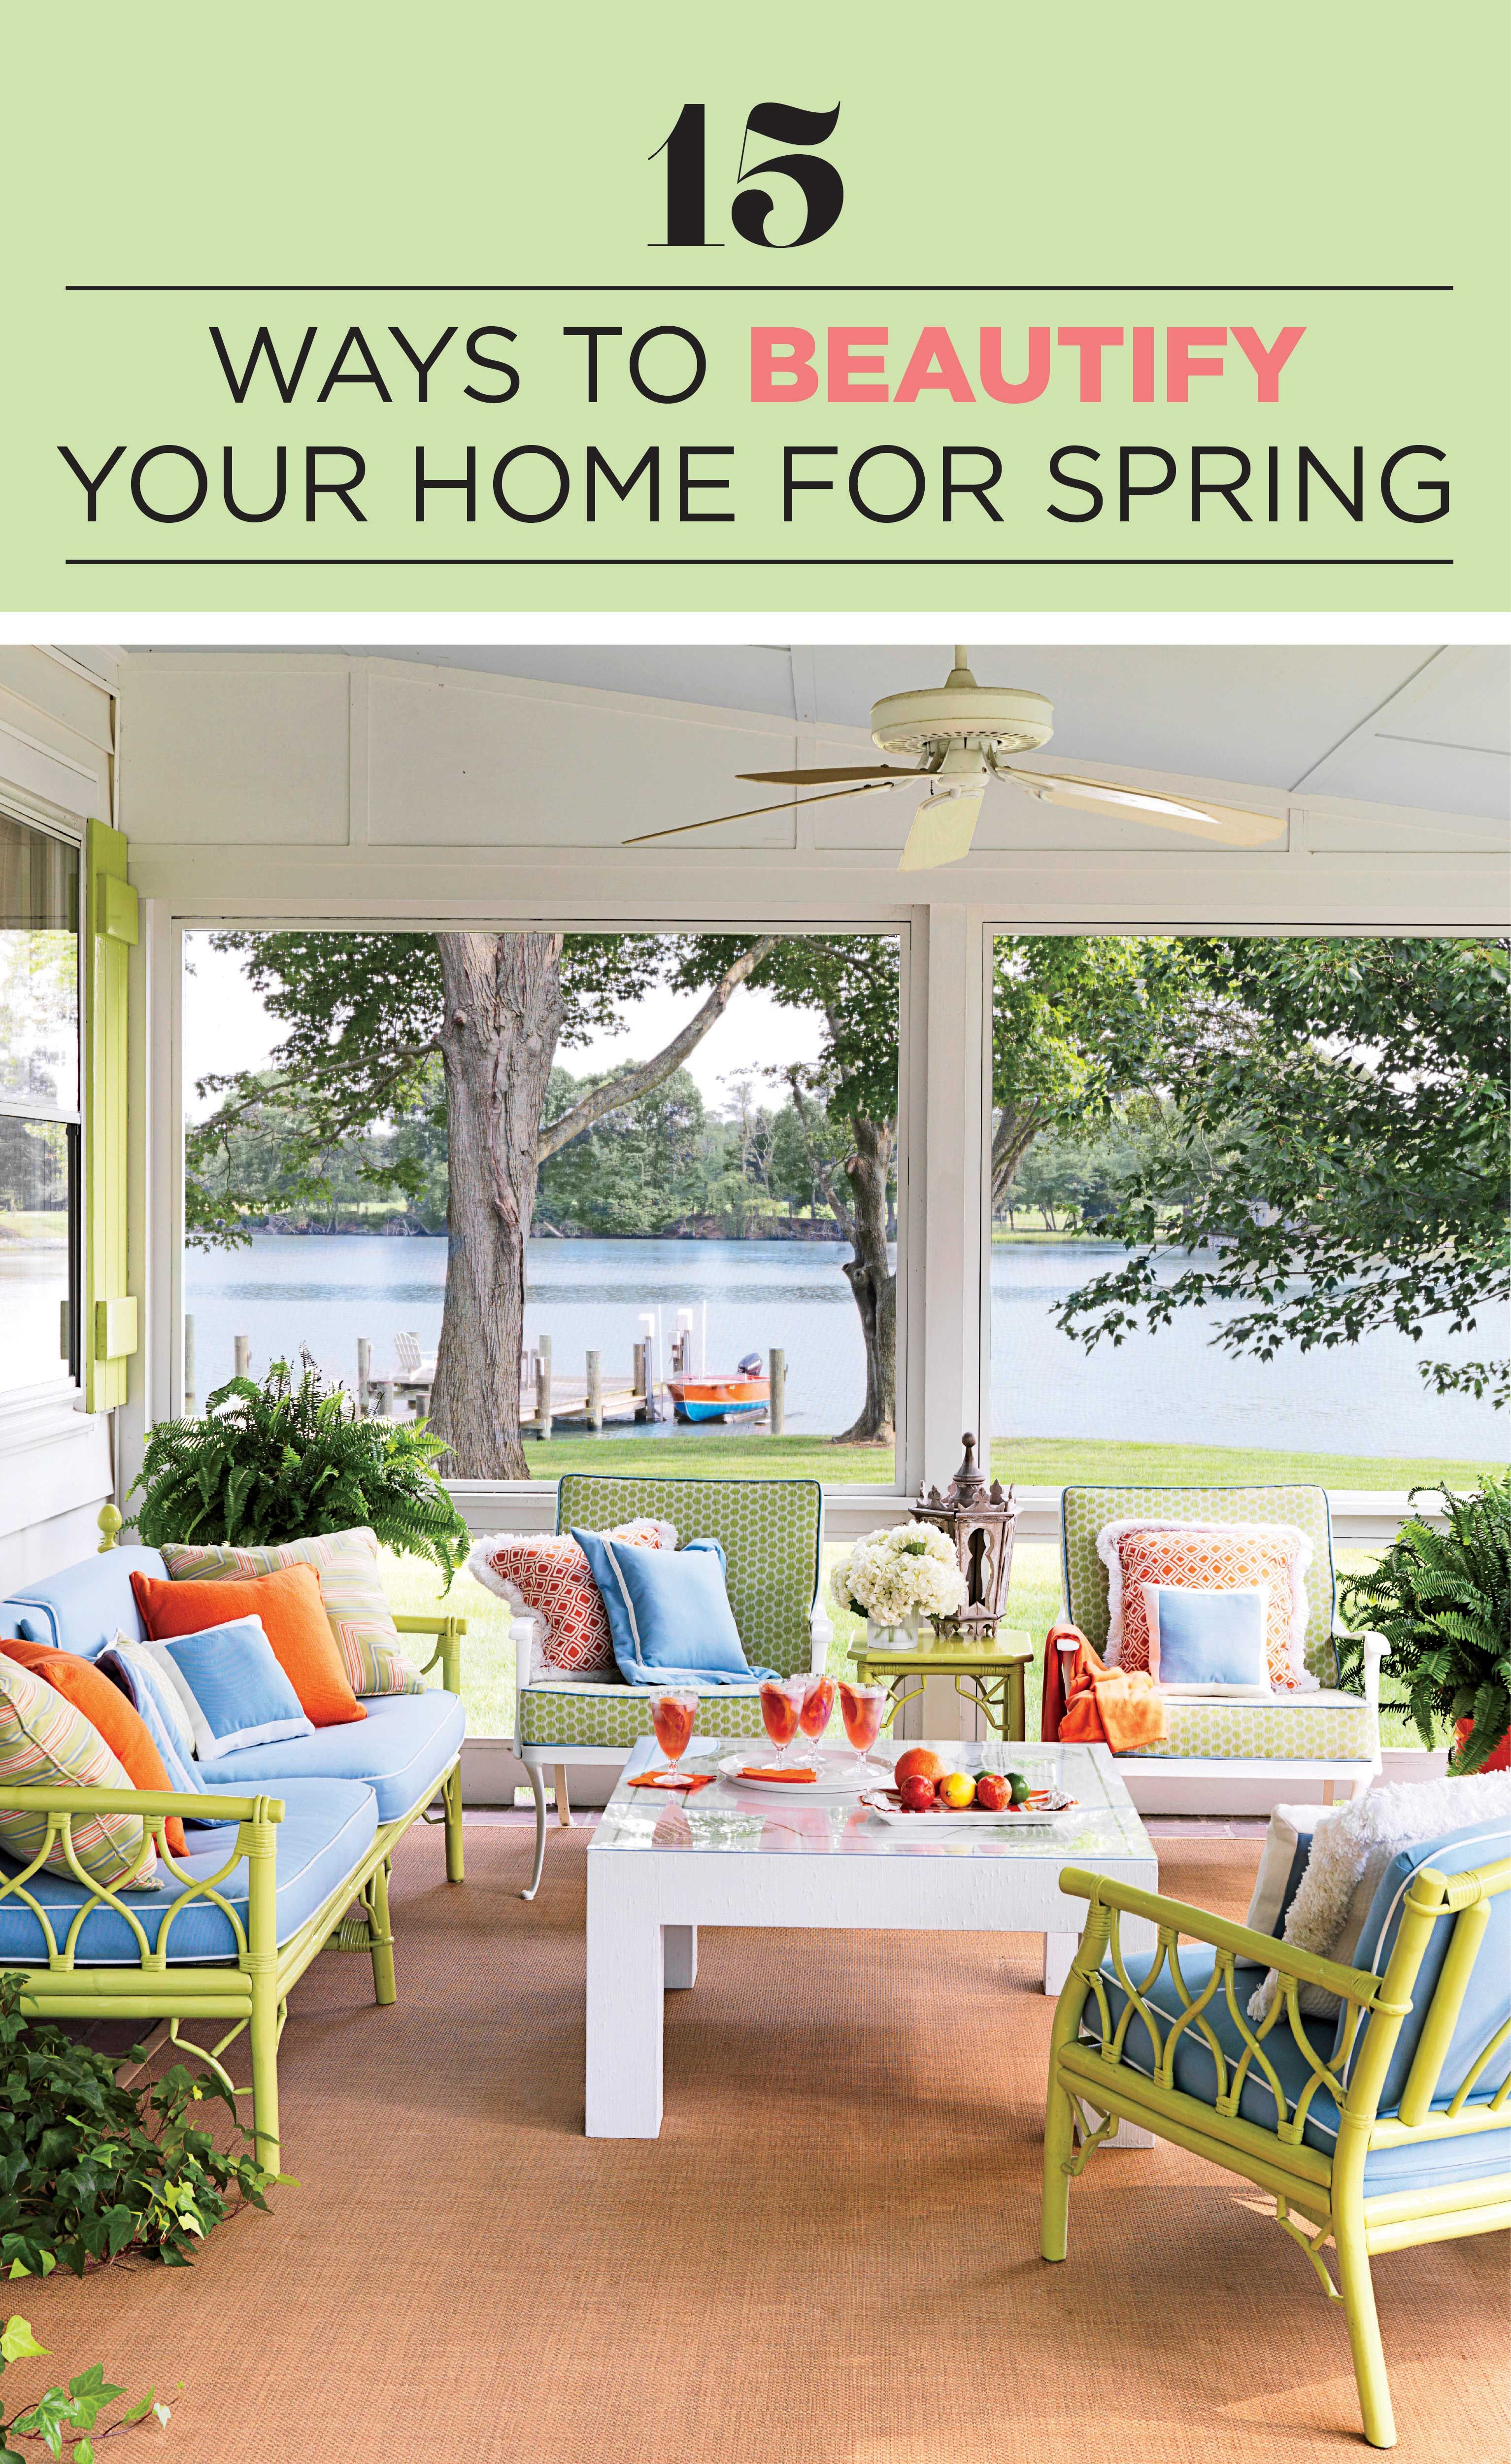 Steal Our Tips To Add A Touch Of Spring To